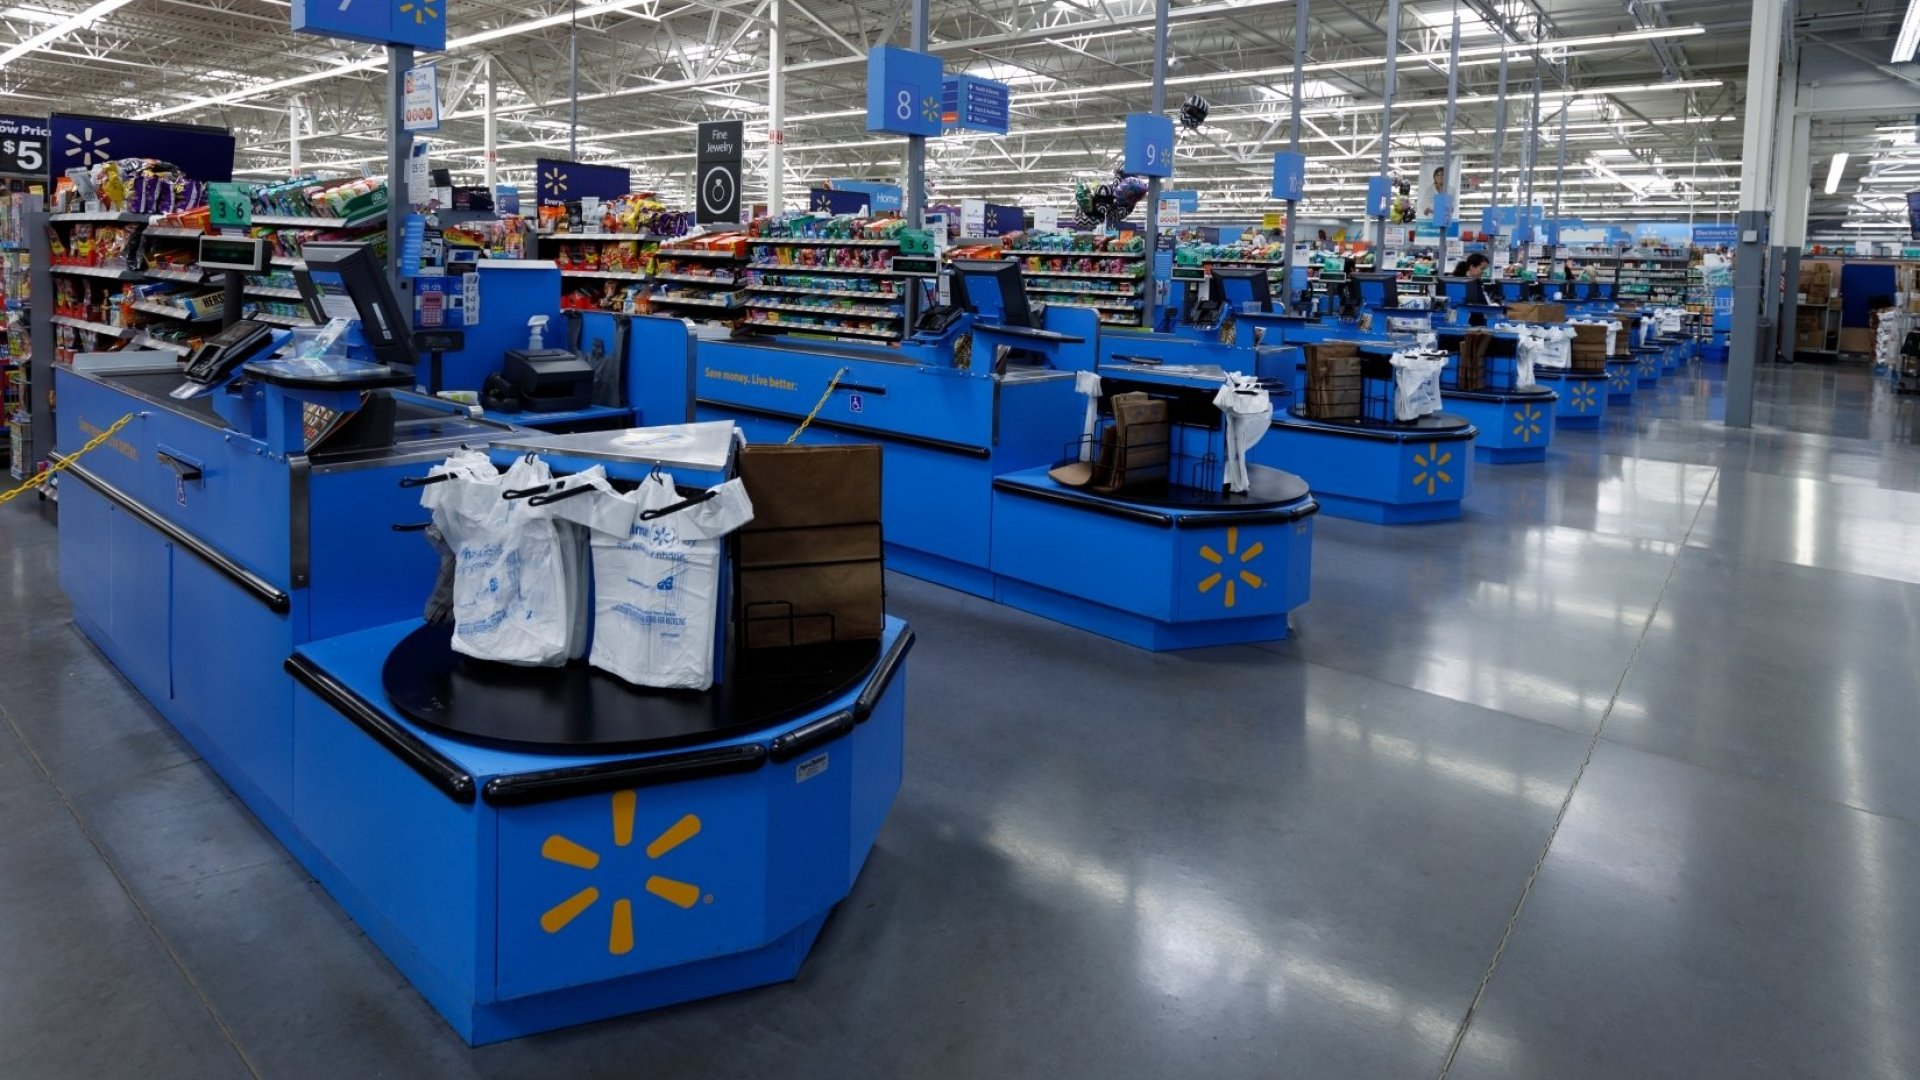 Walmart Just Announced It's Changing a 30-Year Tradition. Here's What Customers Are Saying